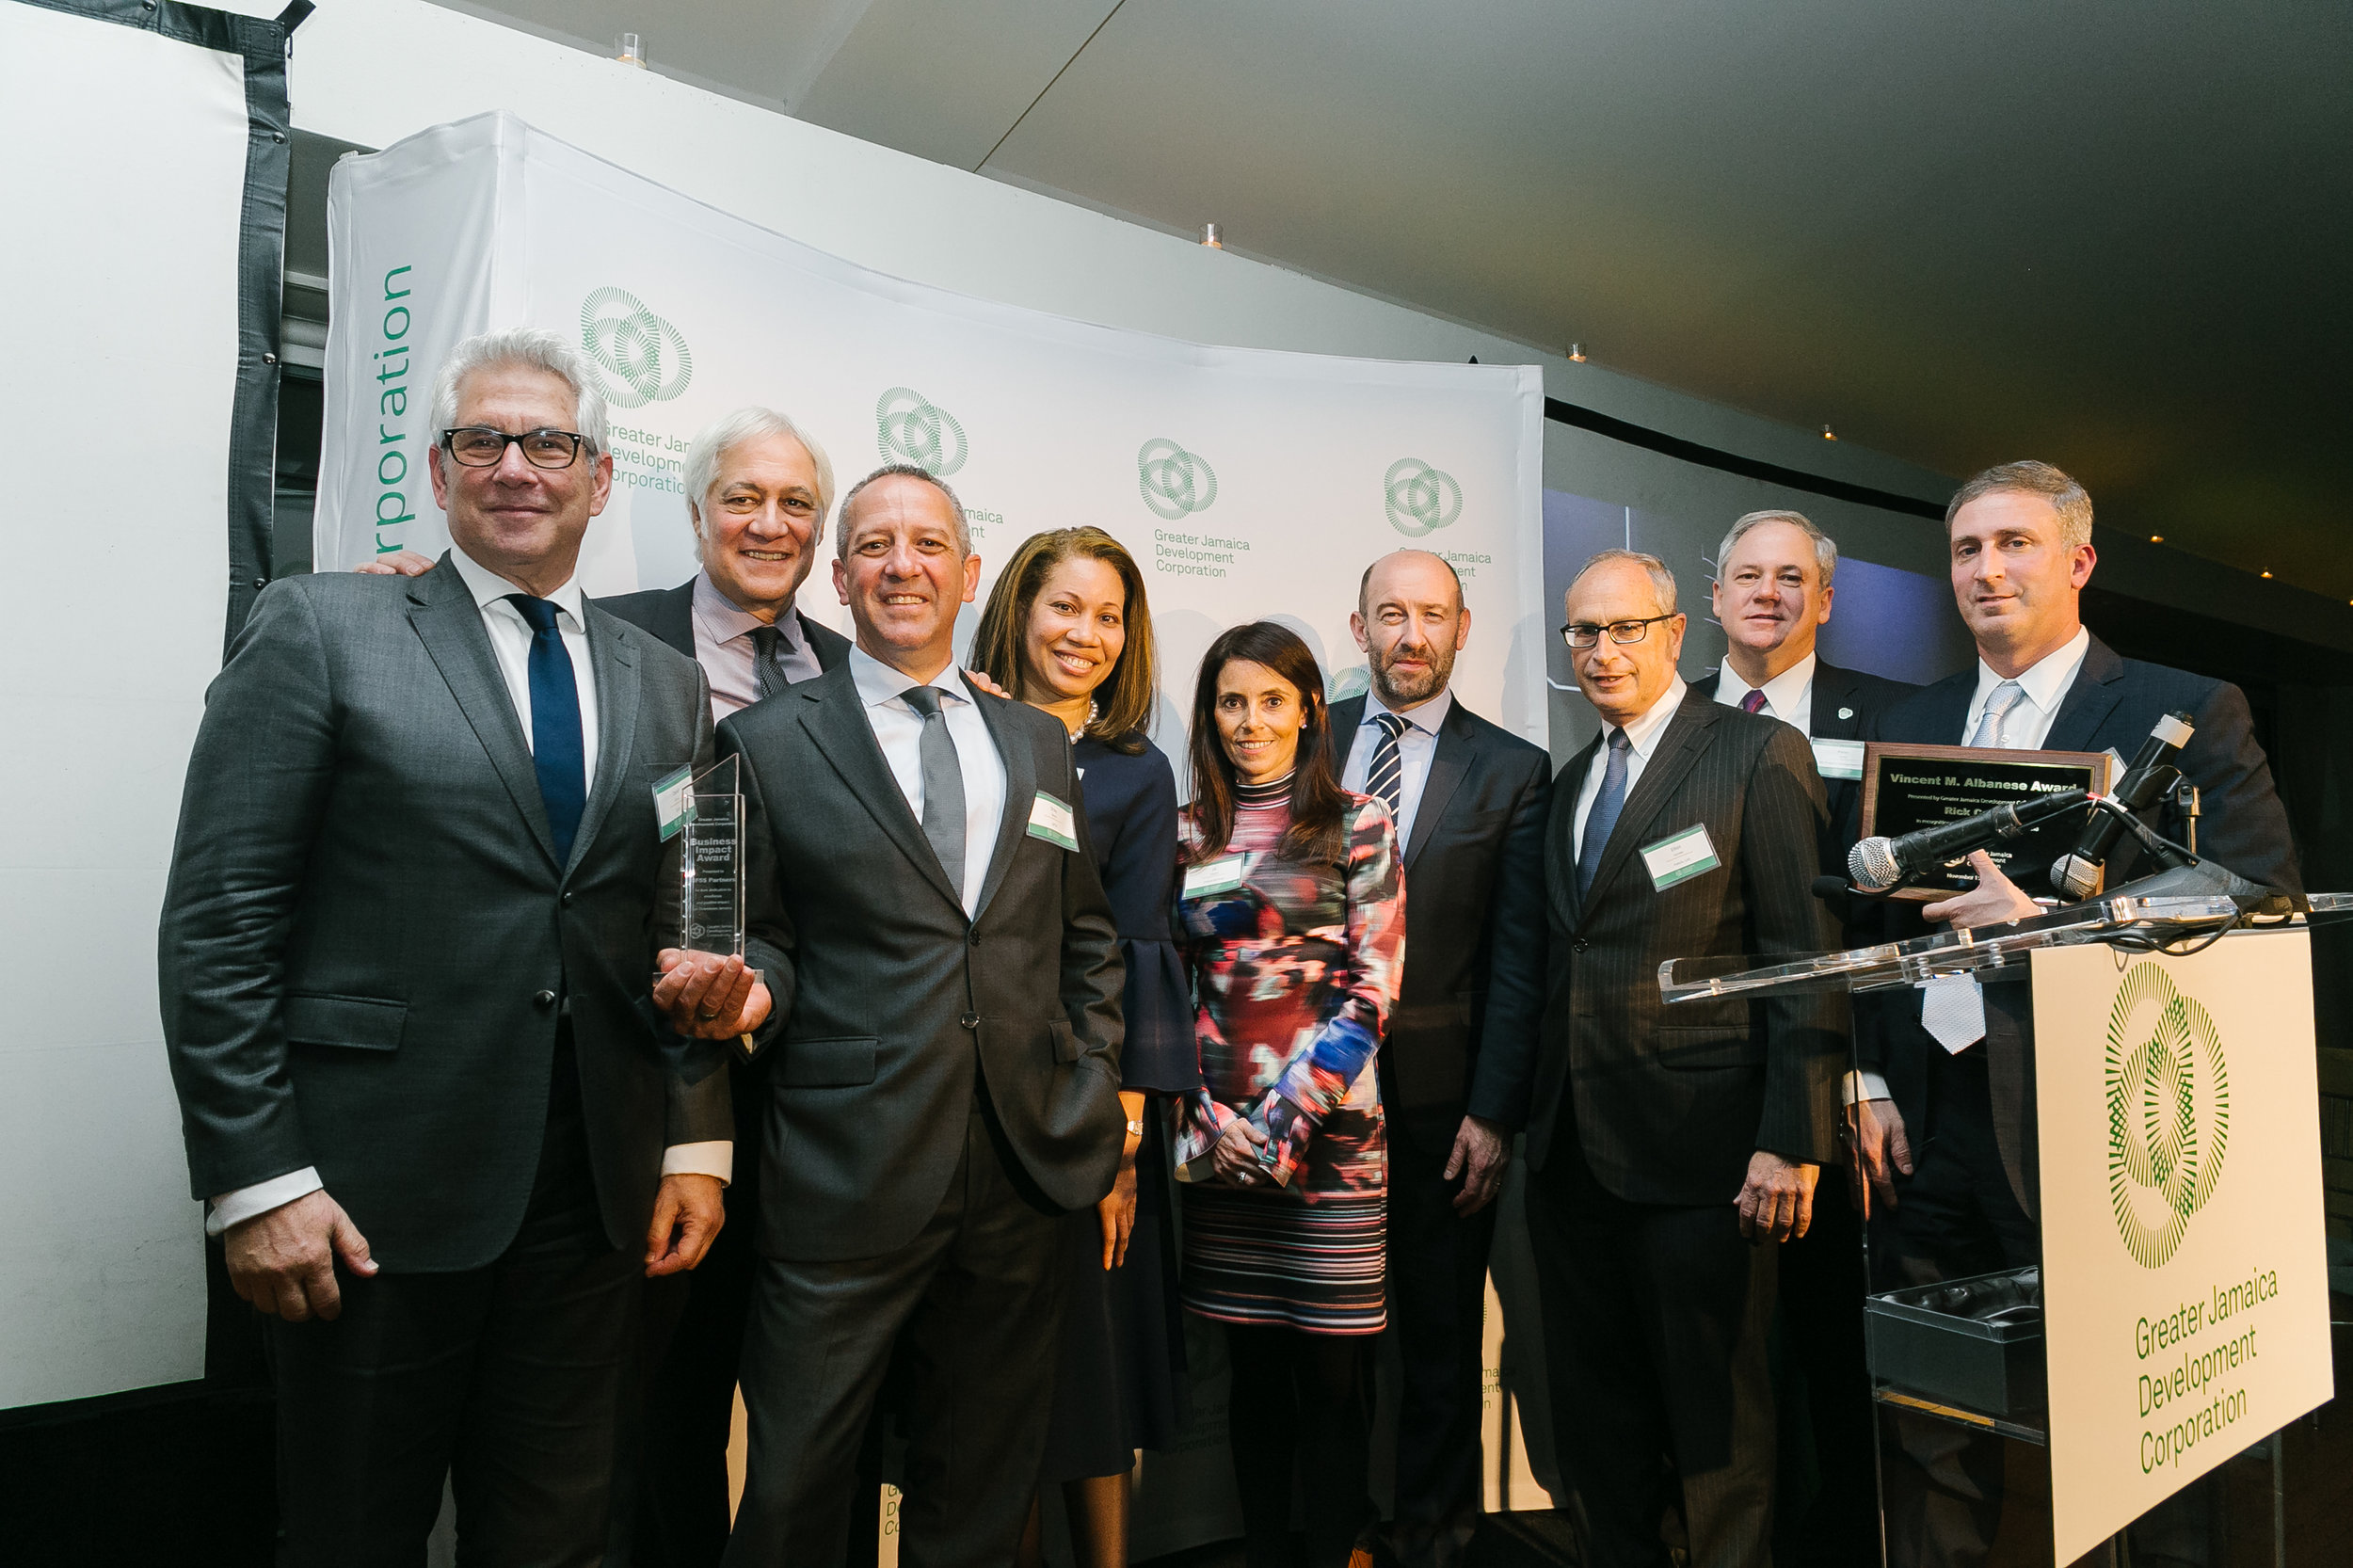 The Greater Jamaica Development Corporation honored Port Authority Executive Director Rick Cotton and the architecture firms GF55 Partners. Photo via GJDC.